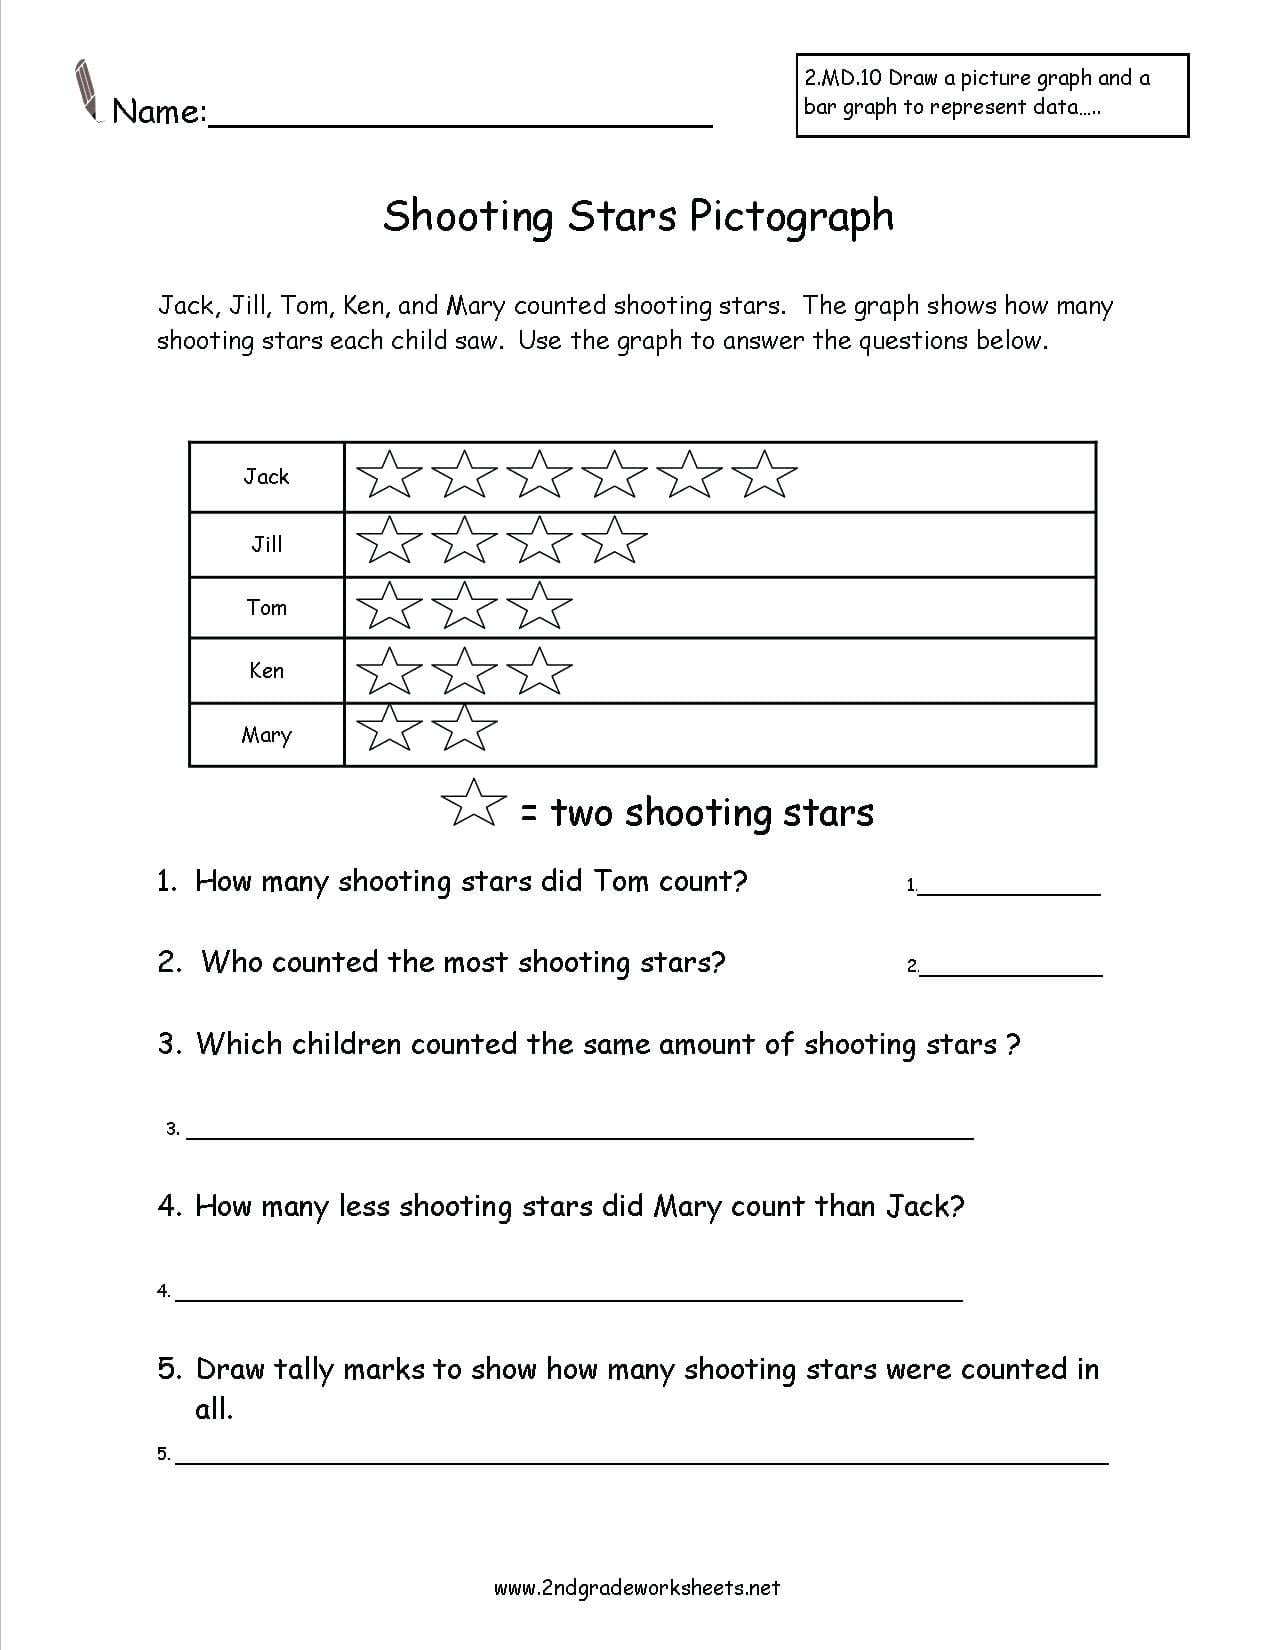 Reading Comprehension Worksheets 5th Grade Multiple Choice